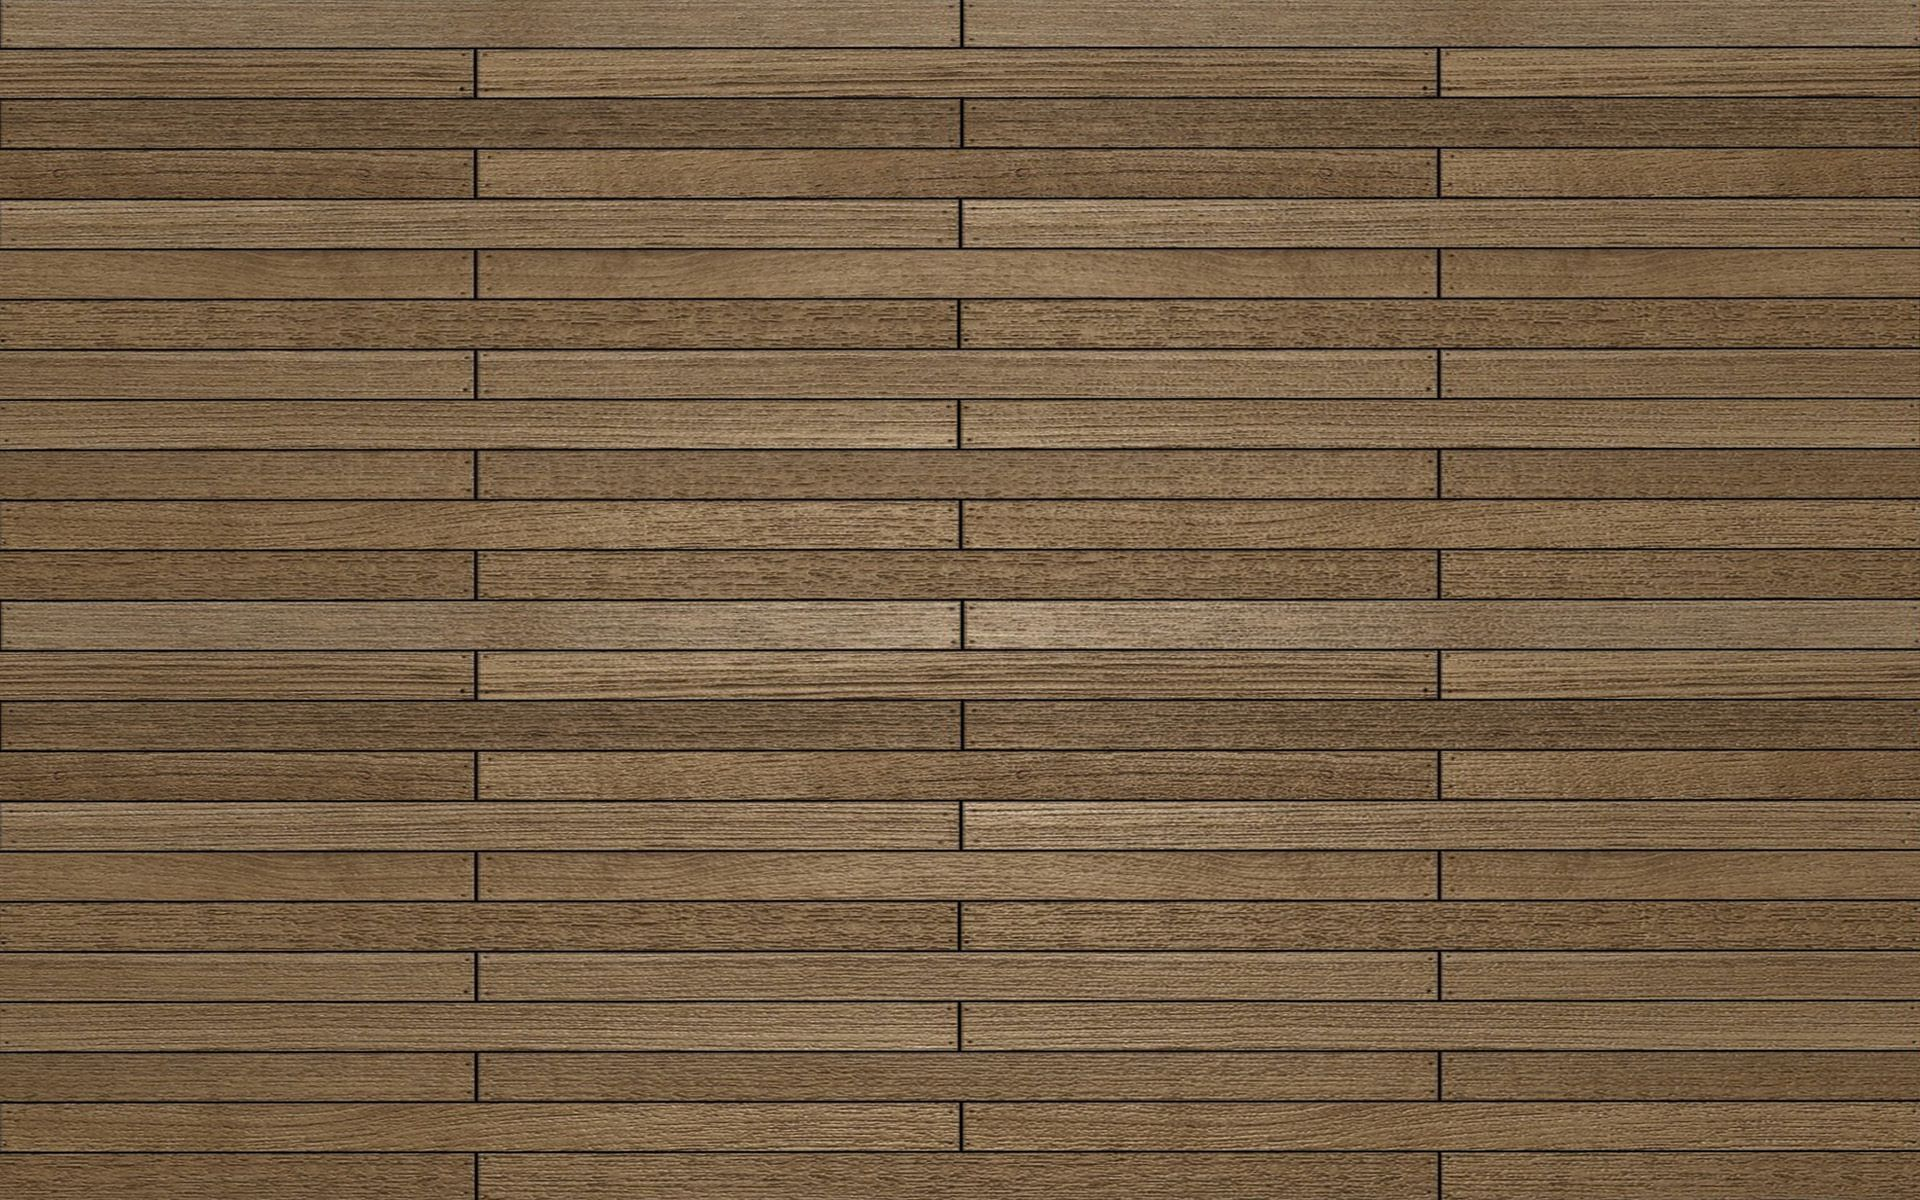 Wood flooring background awesome 31006 material texture for Hardwood floor panels